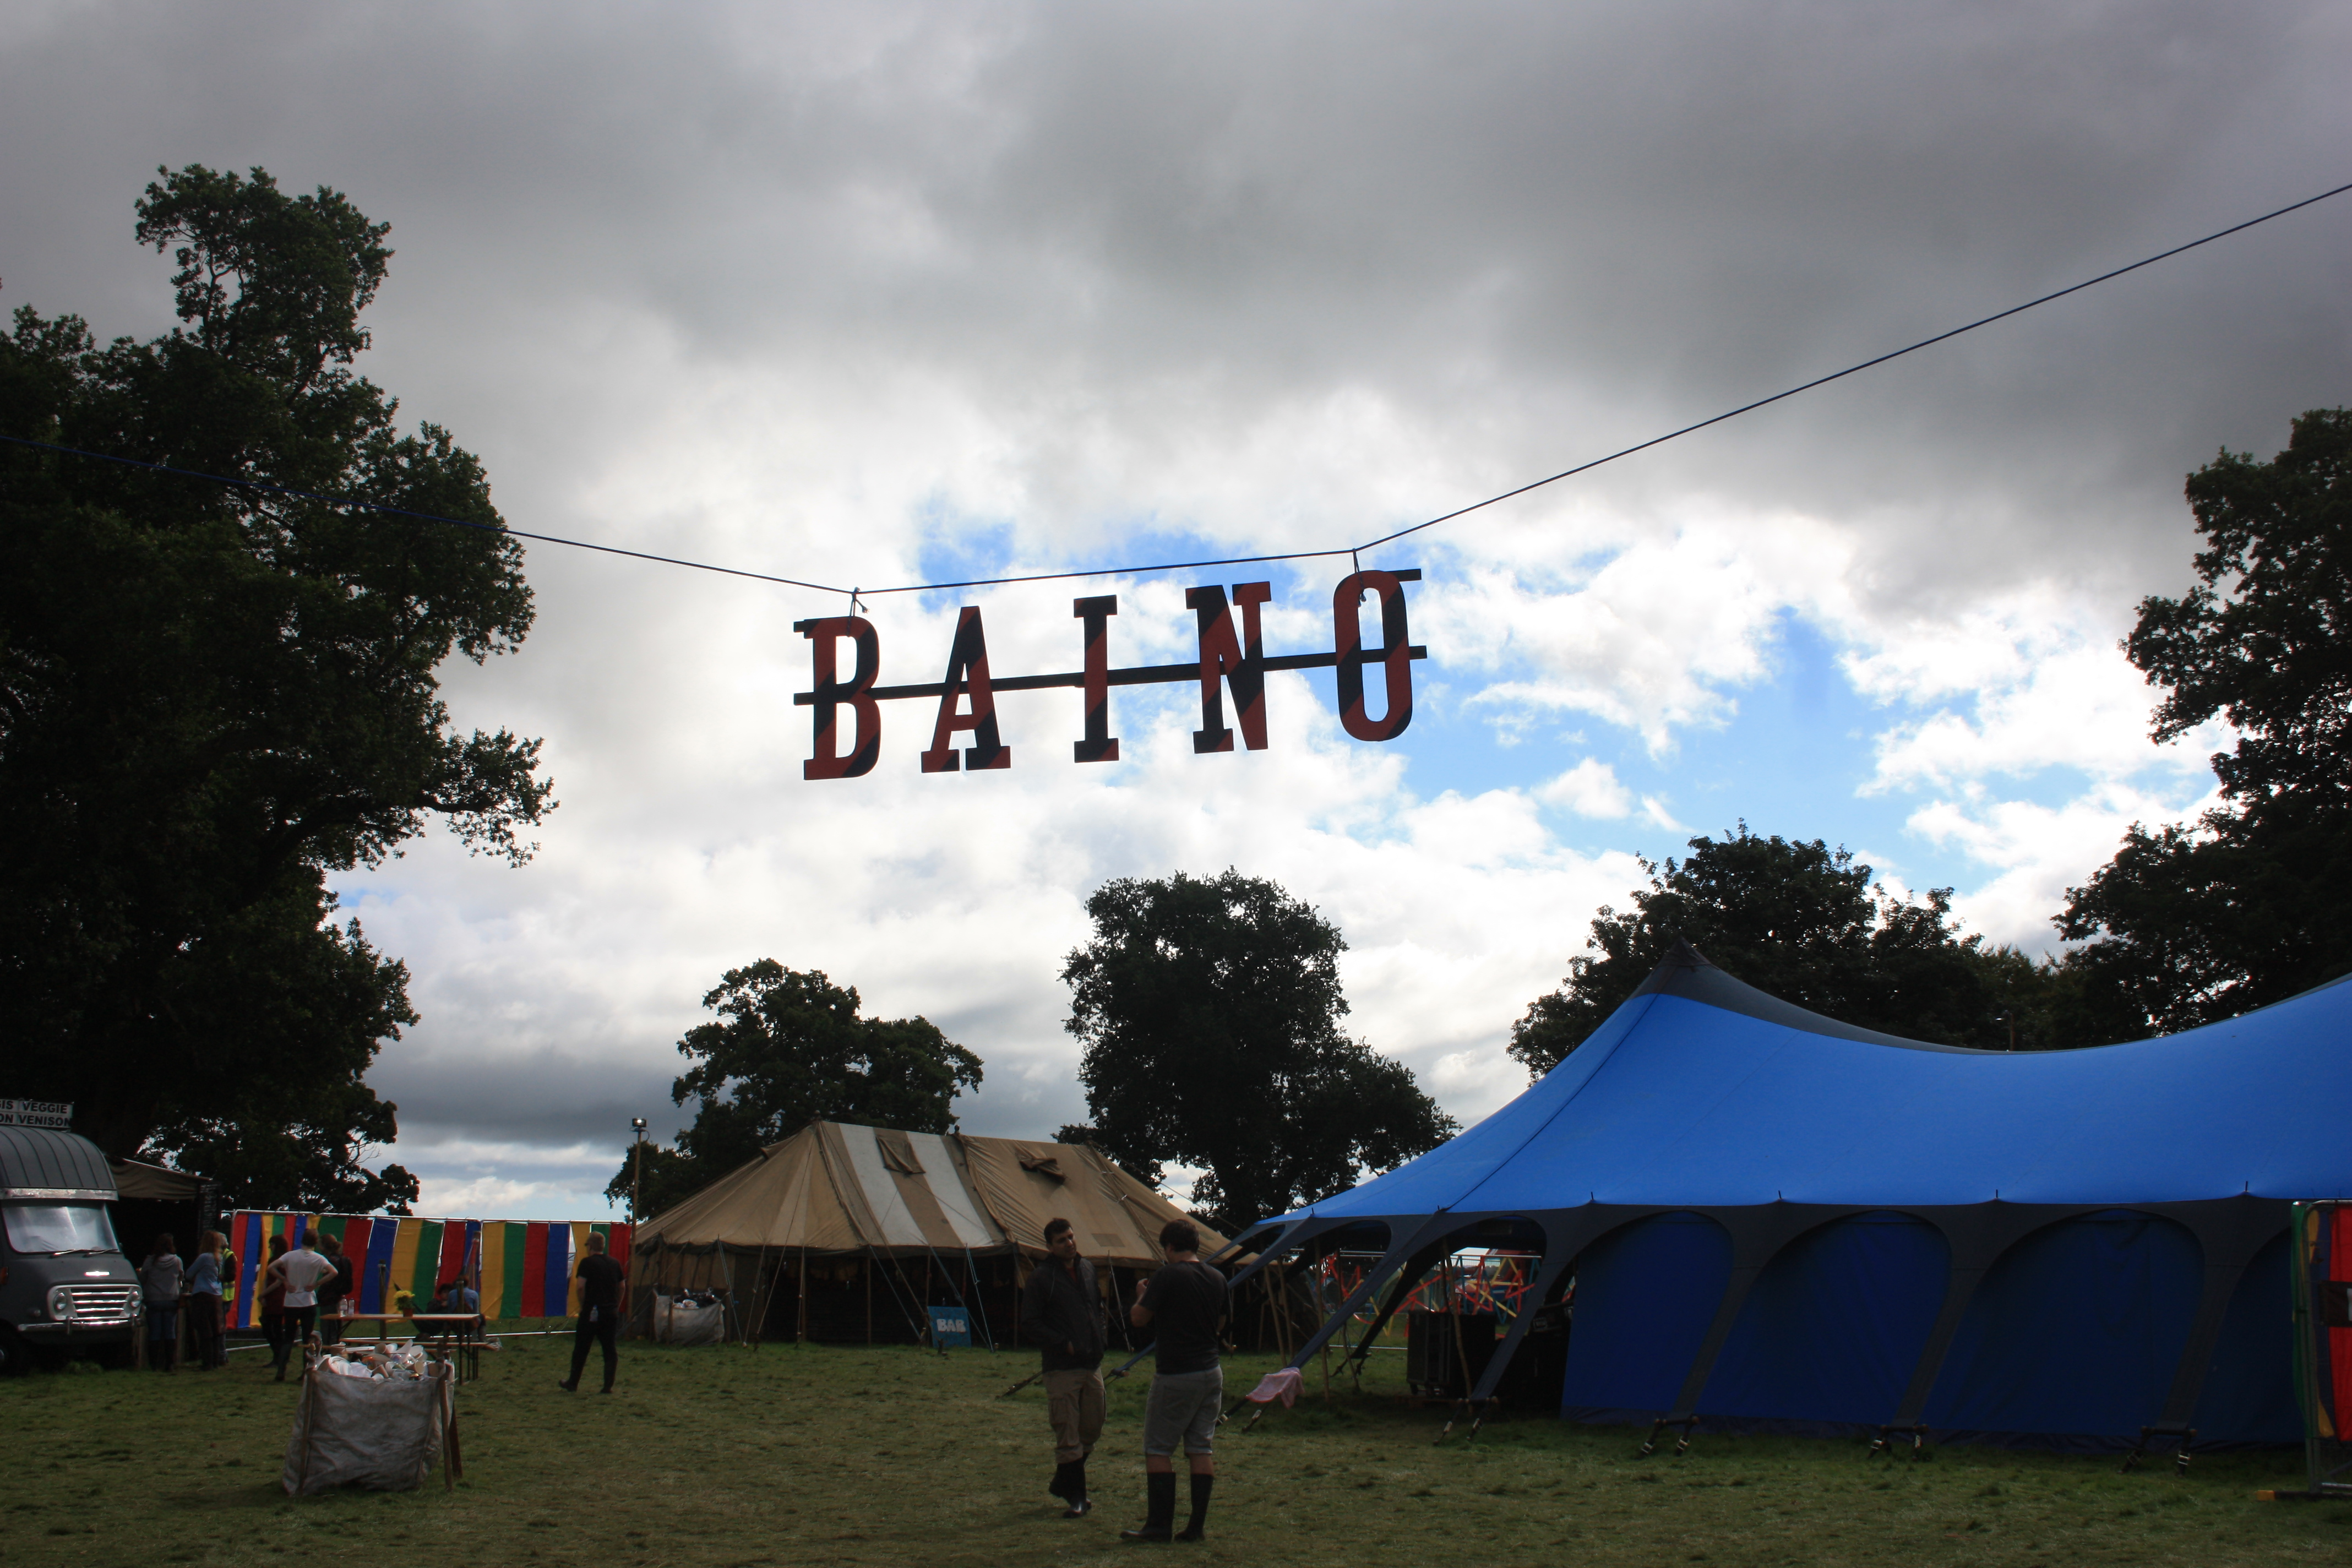 Biano Tent at Doune The Rabbit Hole Festival